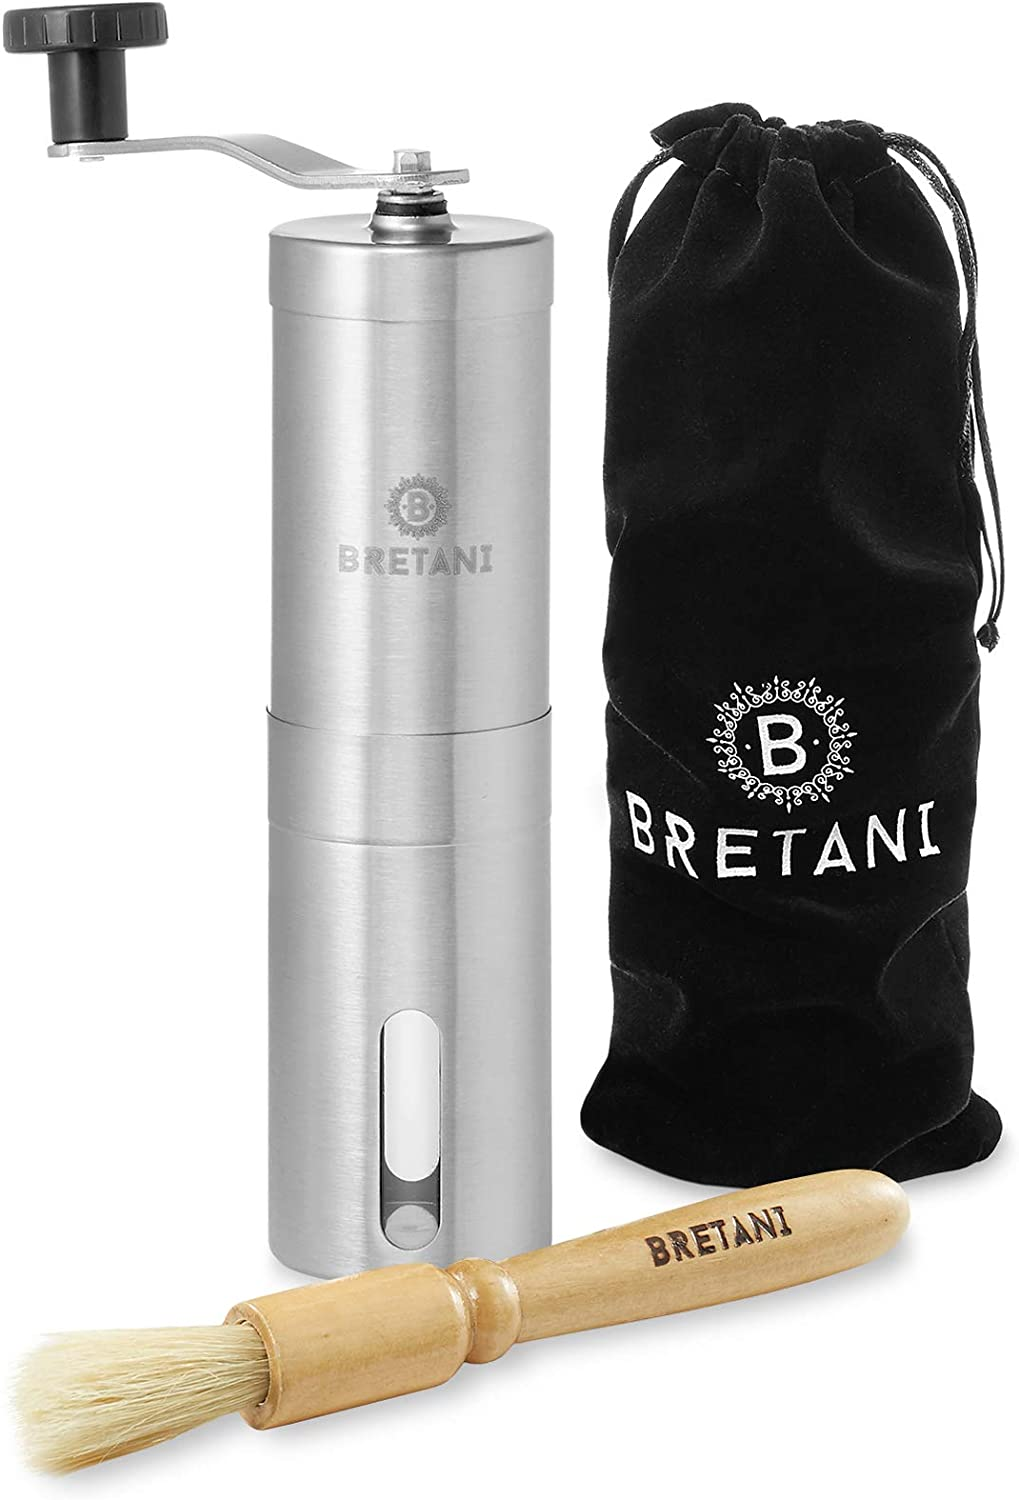 Bretani Manual Coffee Grinder - New mail order Adj with Stainless Steel Indianapolis Mall Brushed